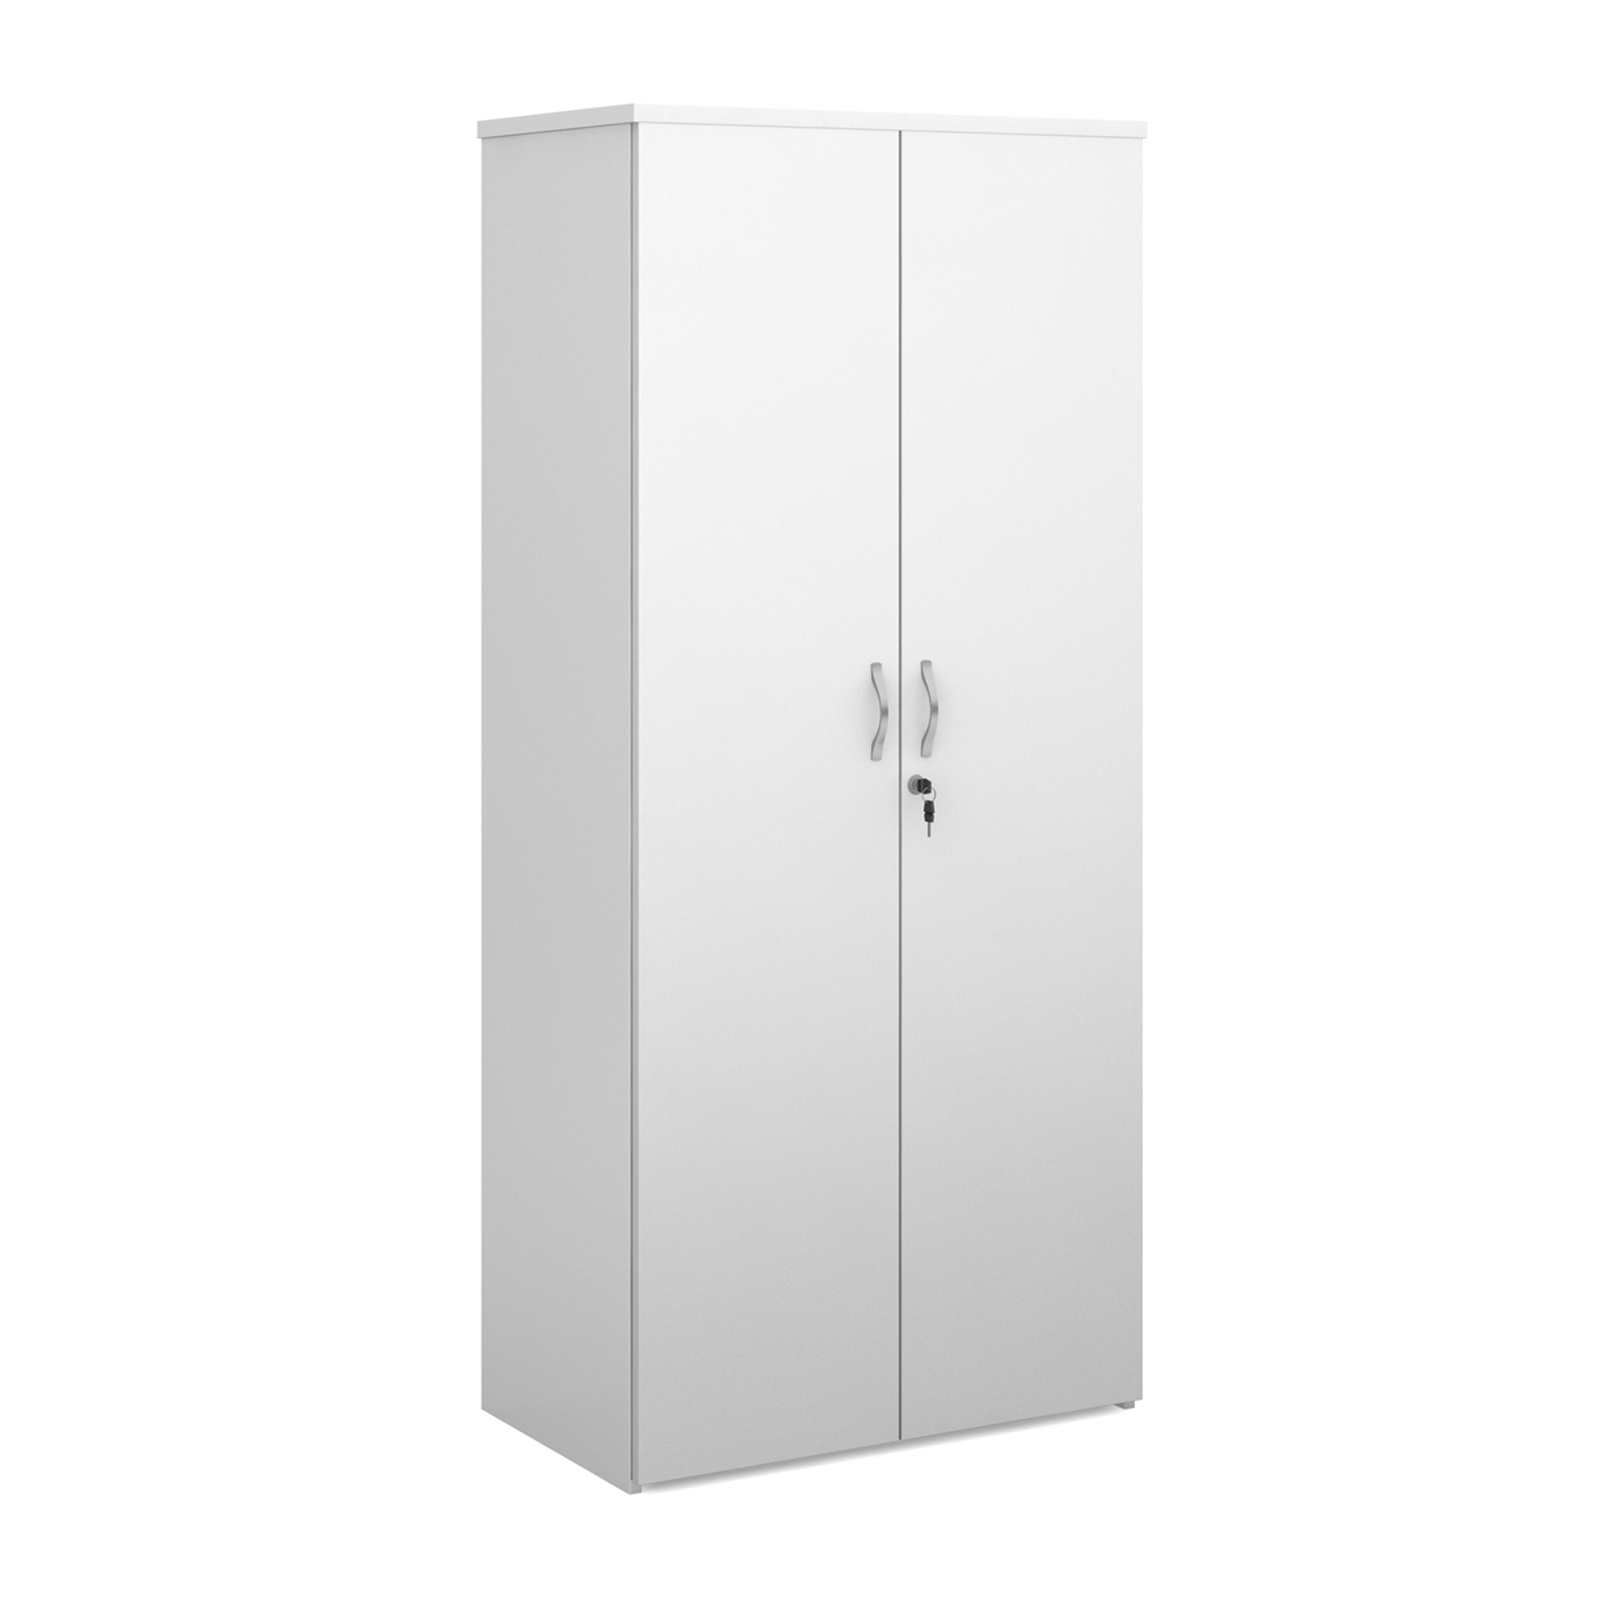 Over 1200mm High Universal double door cupboard 1790mm high with 4 shelves - white